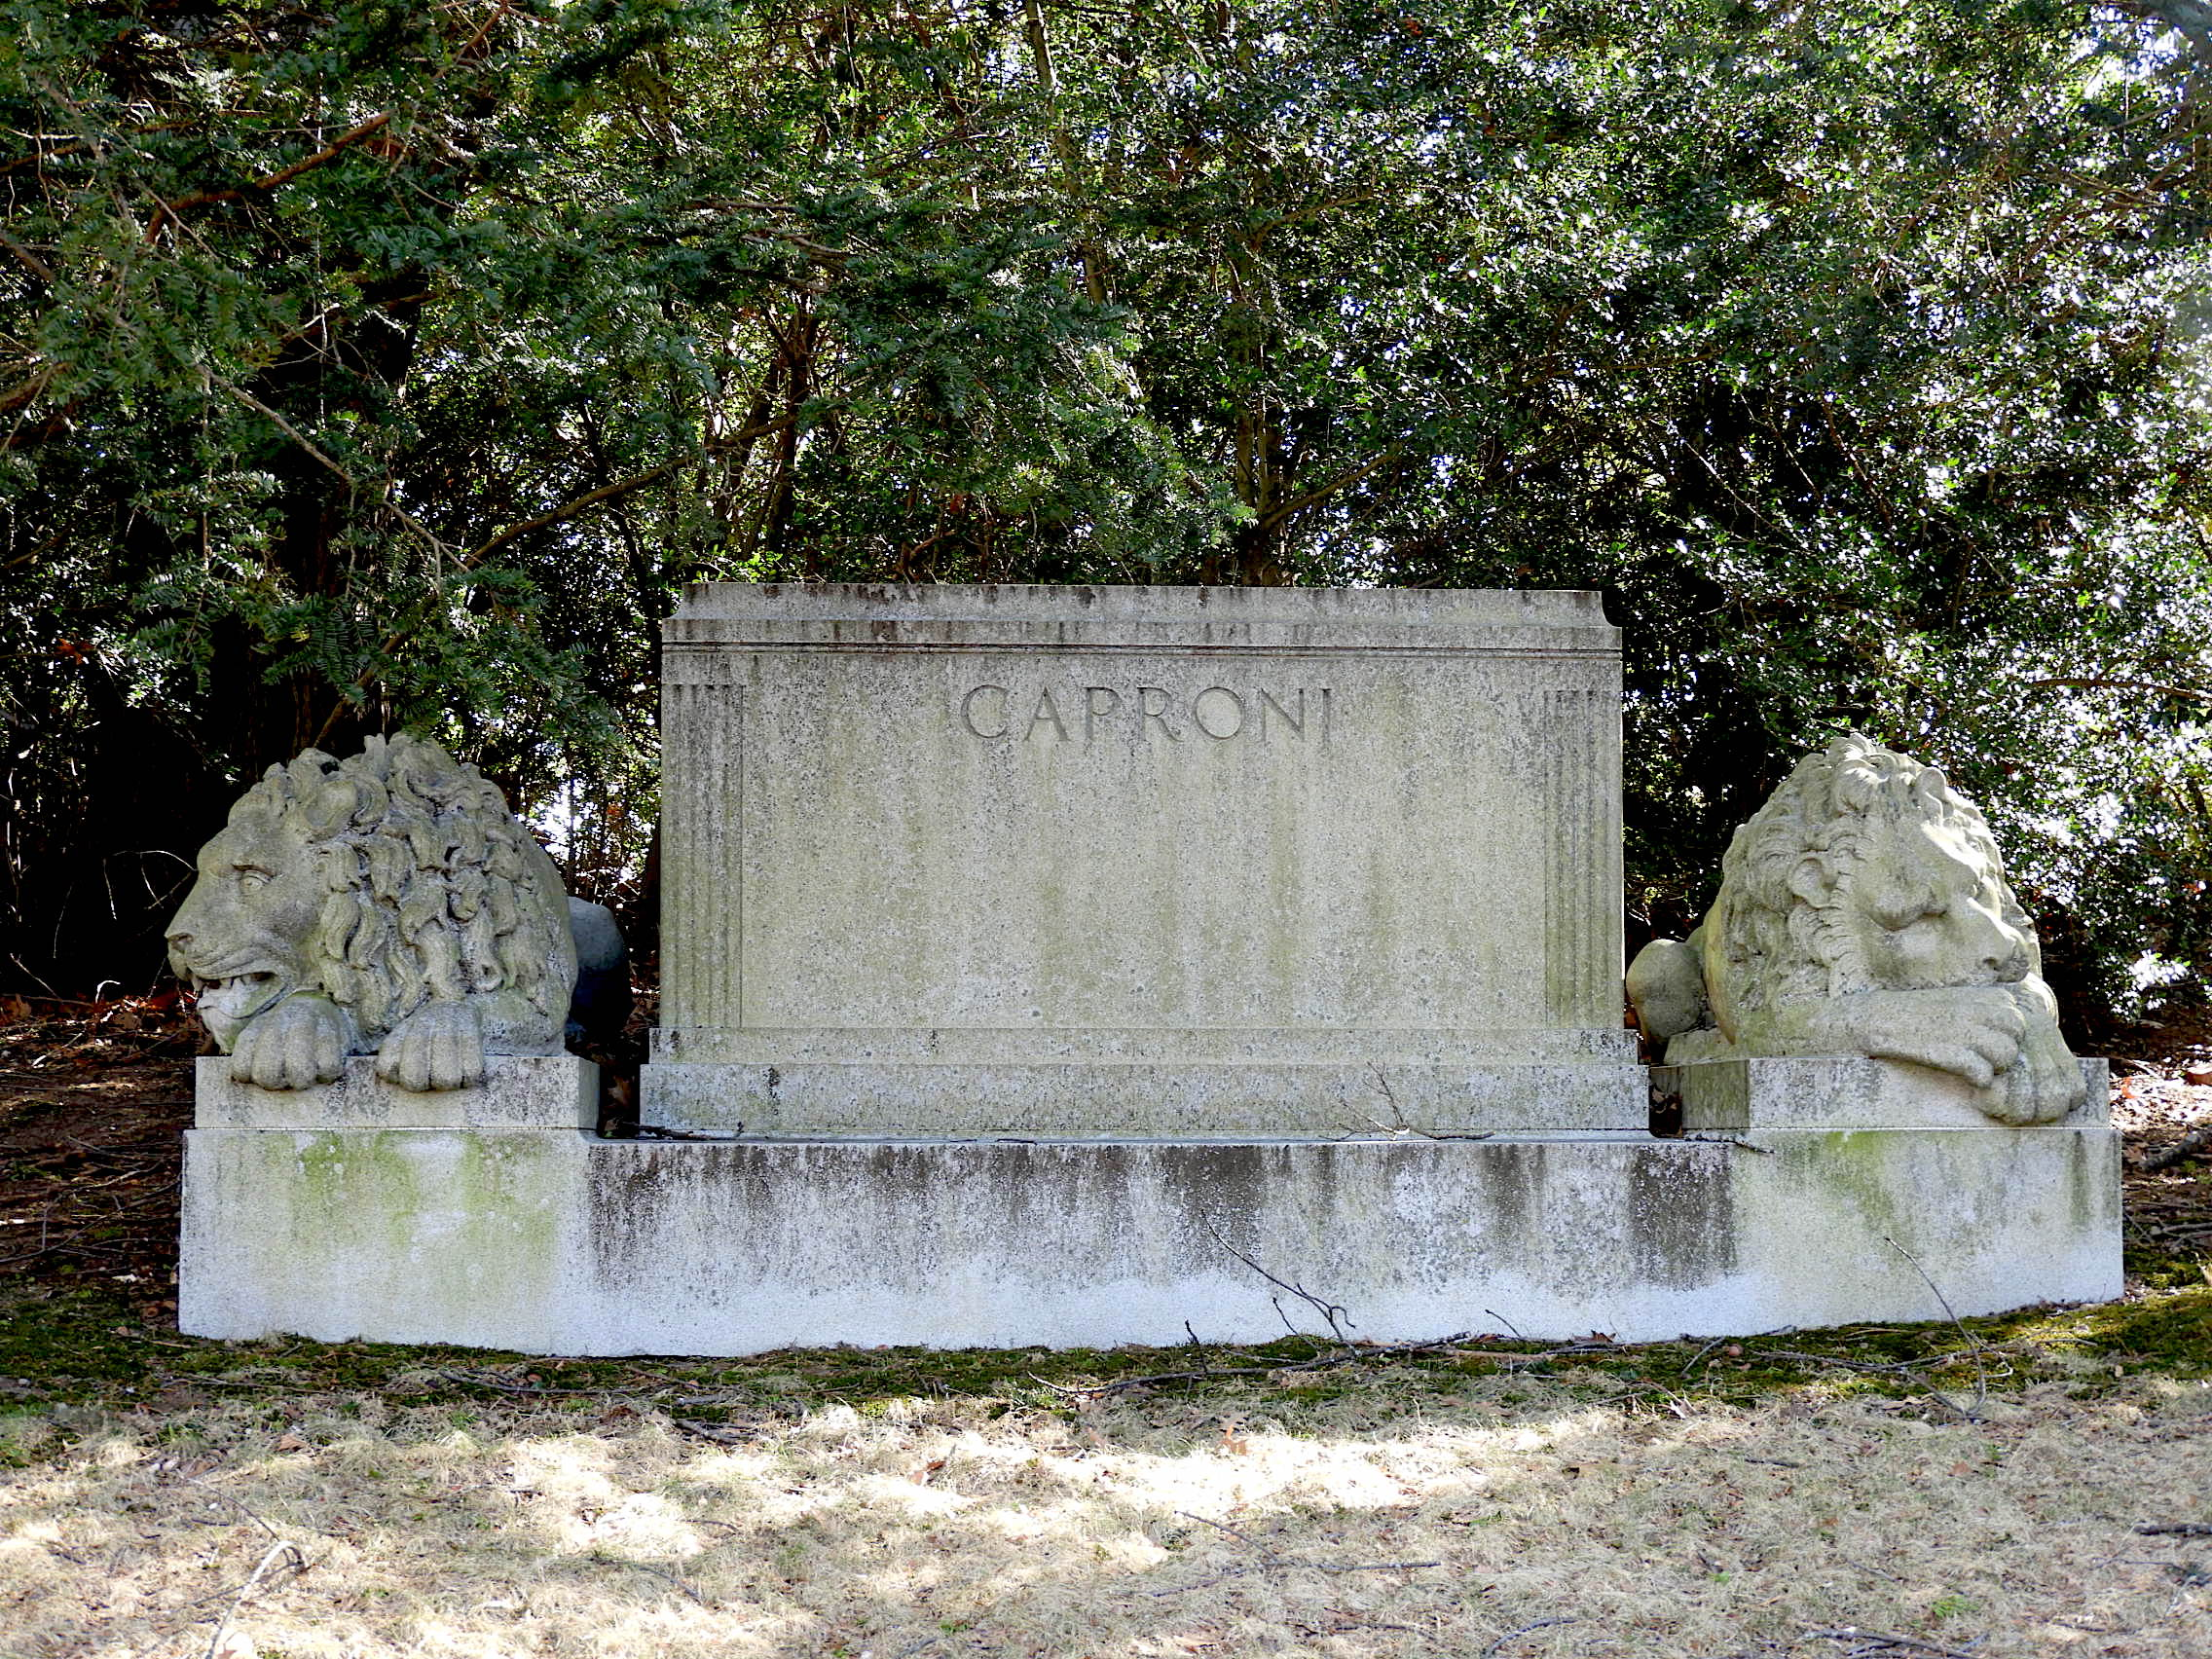 The Caproni Monument. Forest Hills Cemetery. Photograph by Richard Heath.